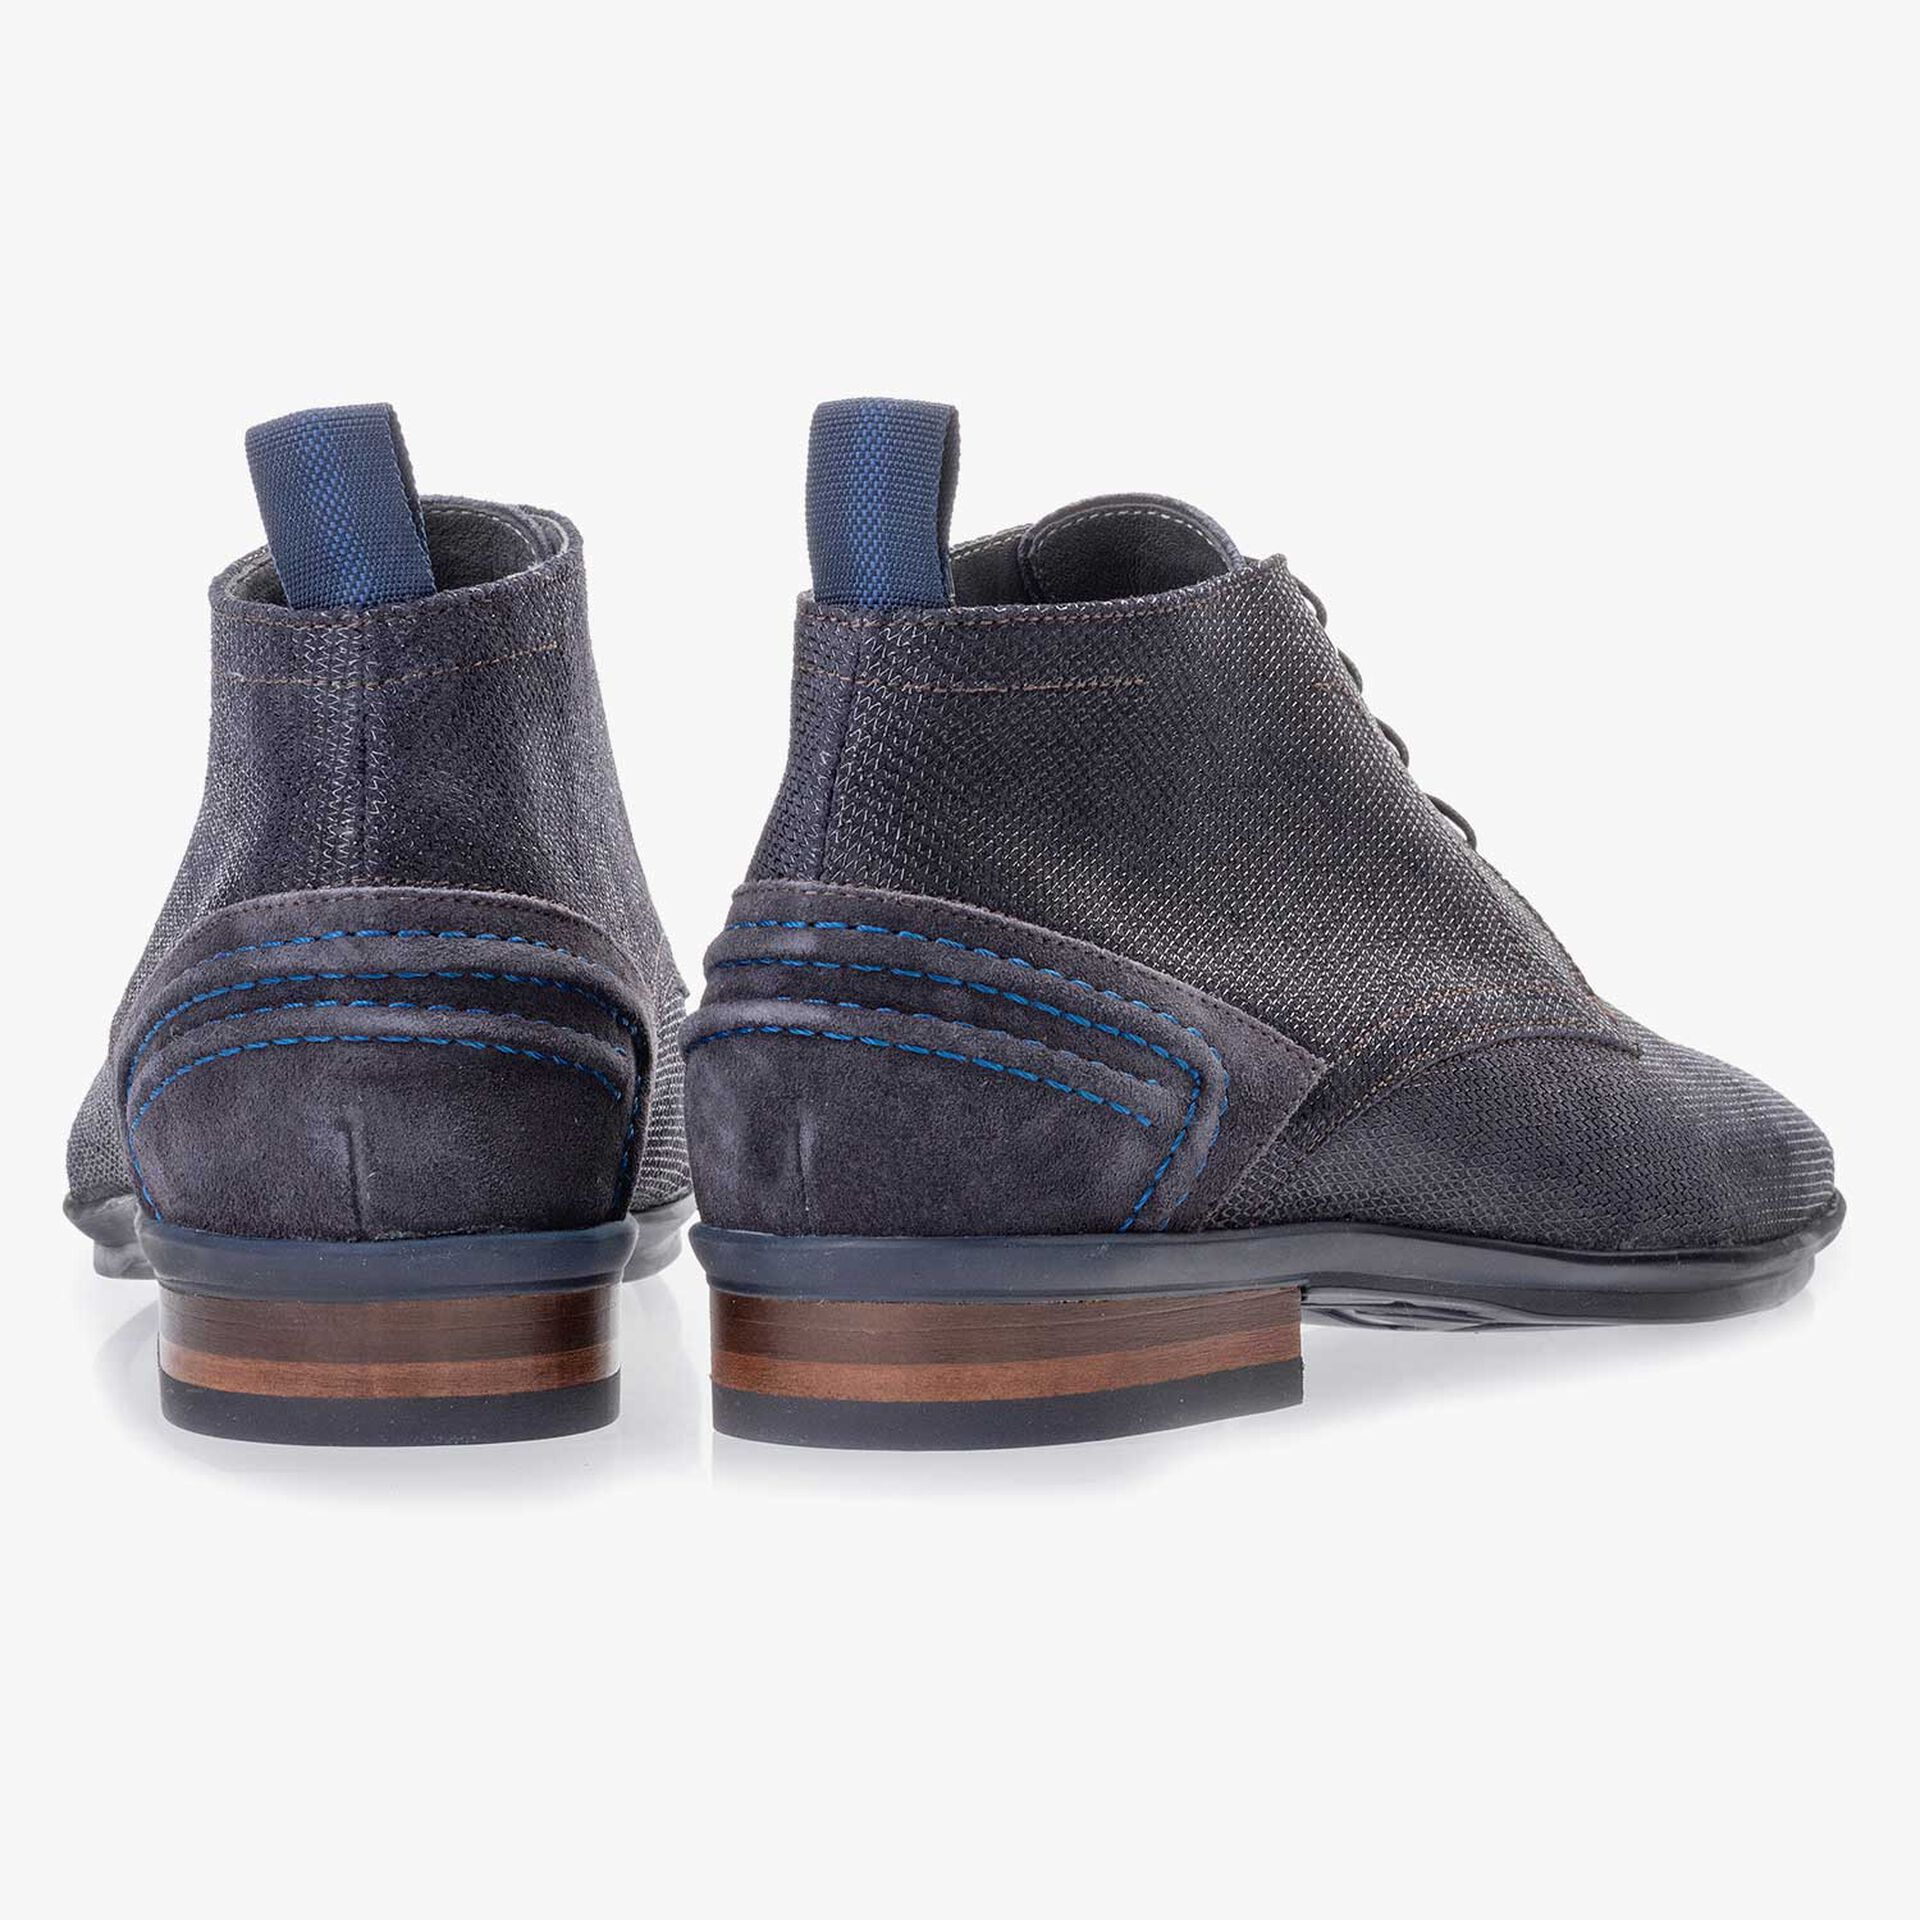 Blue suede leather lace boot